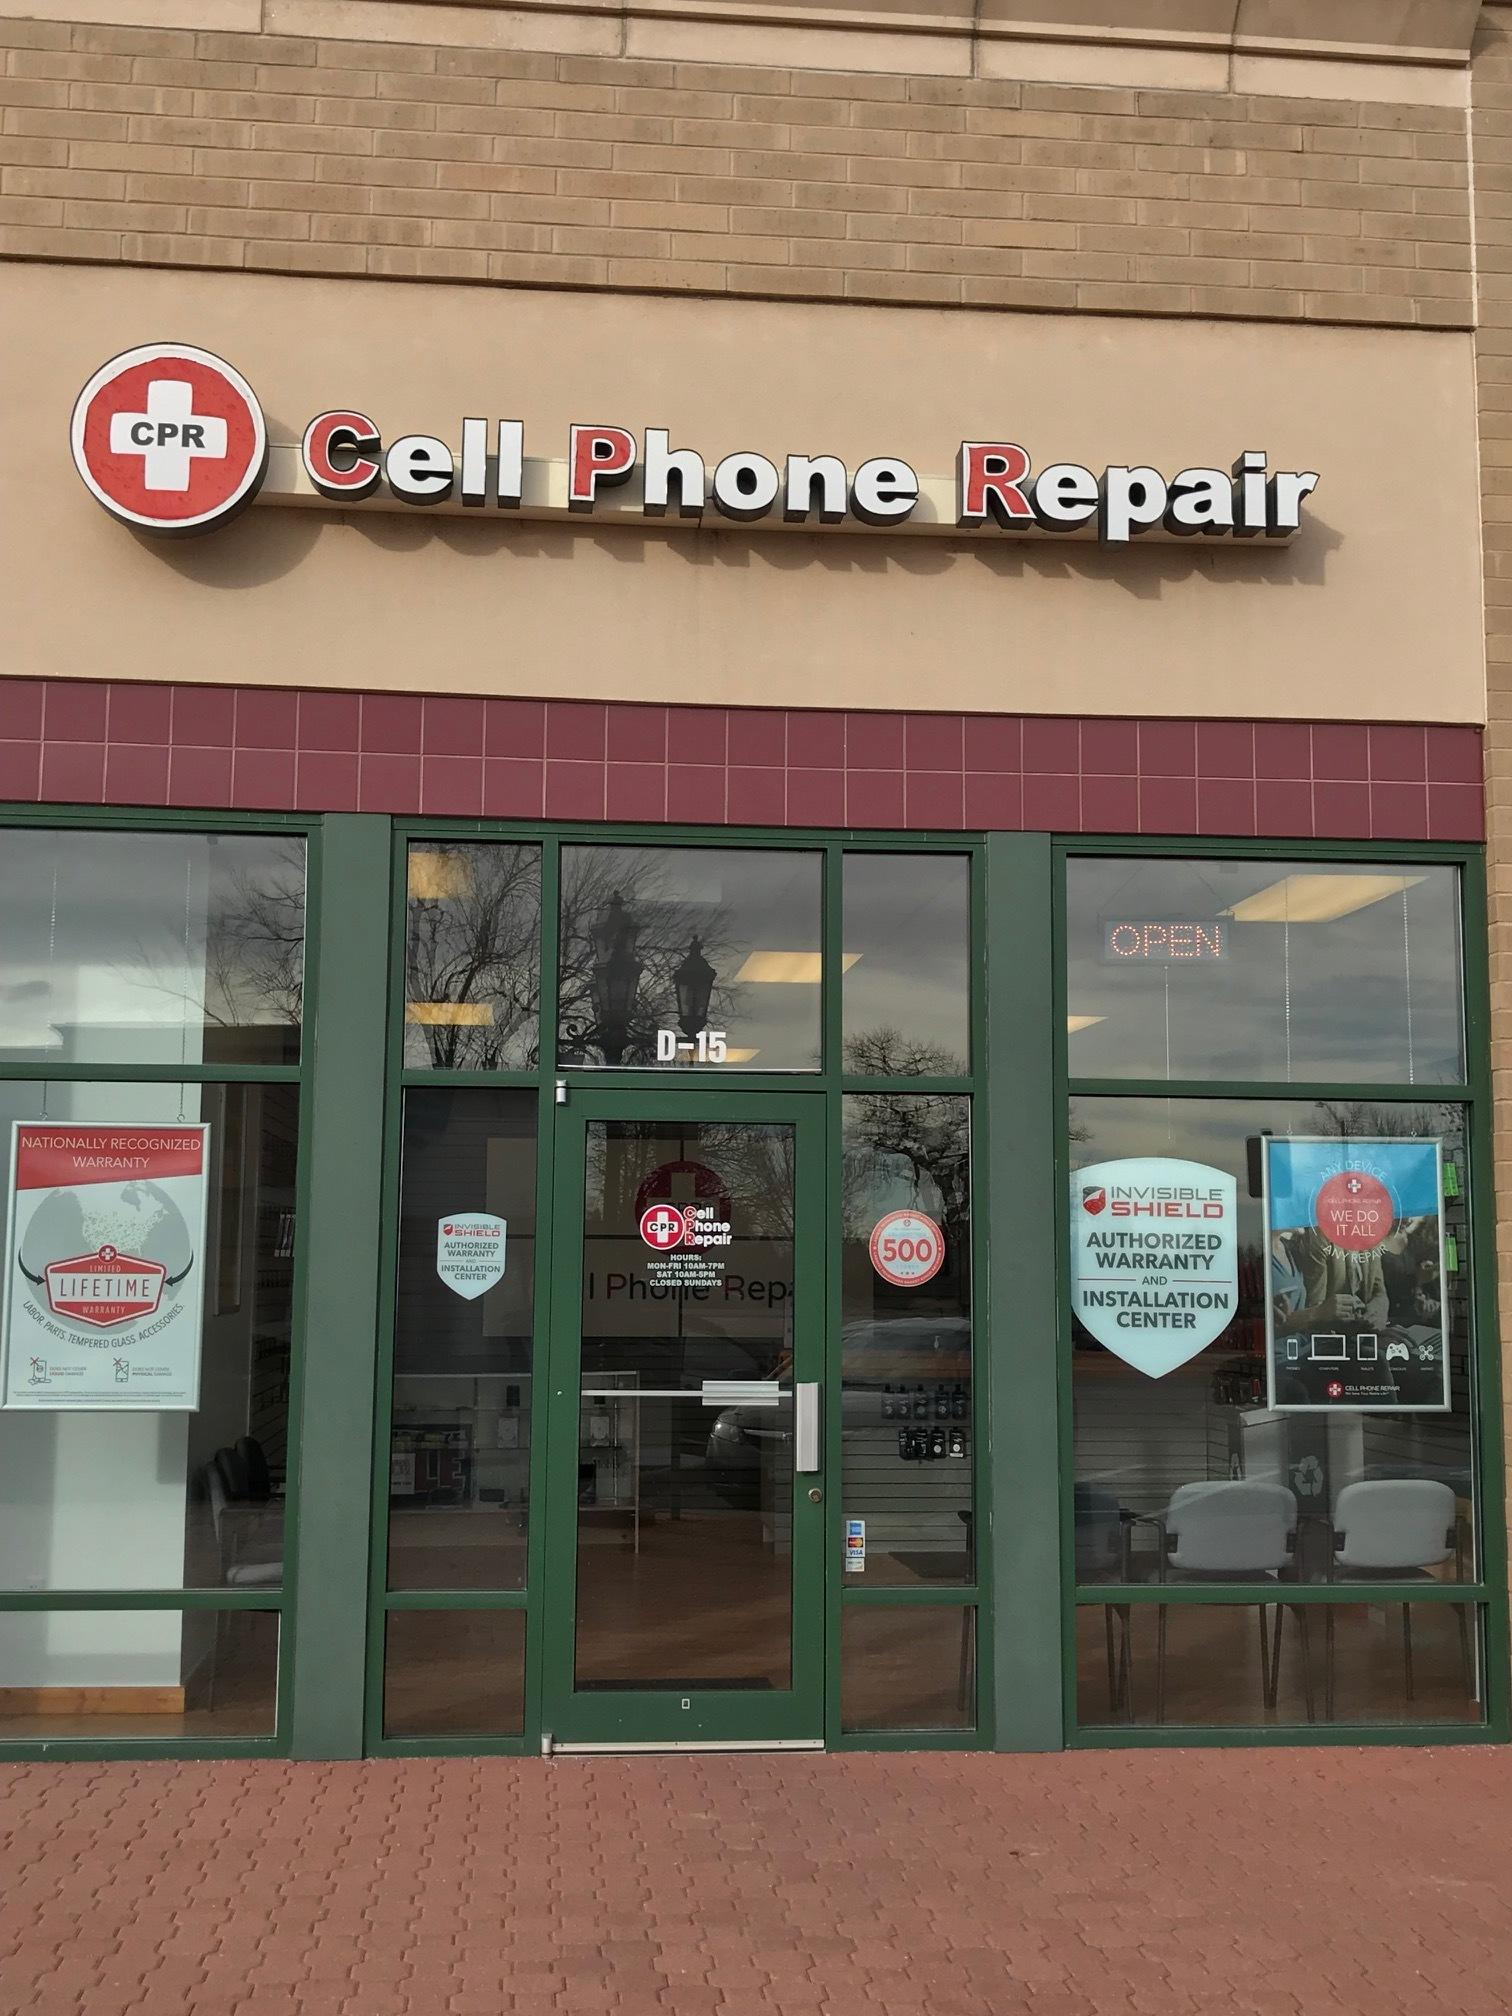 Cpr Cell Phone Repair Fort Collins 238 E Harmony Rd Fort Collins